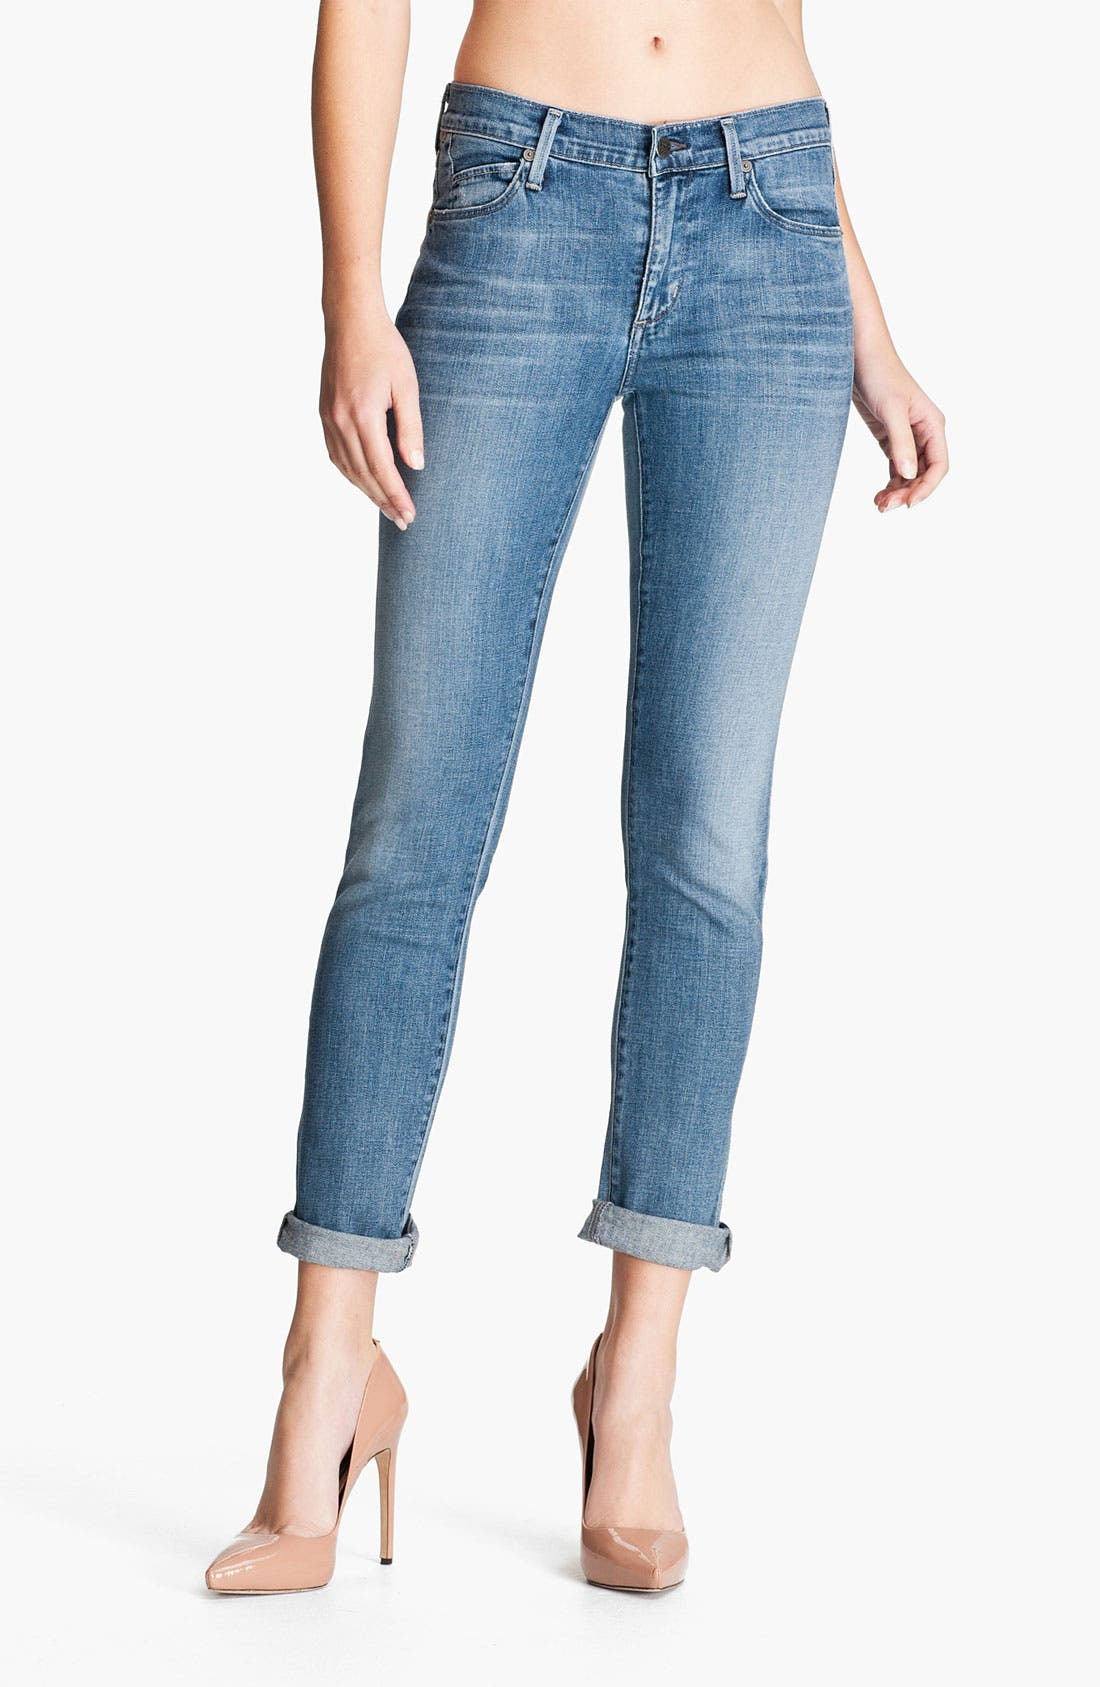 Alternate Image 1 Selected - Citizens of Humanity 'Mandy' Slim Straight Leg Jeans (Crystal)